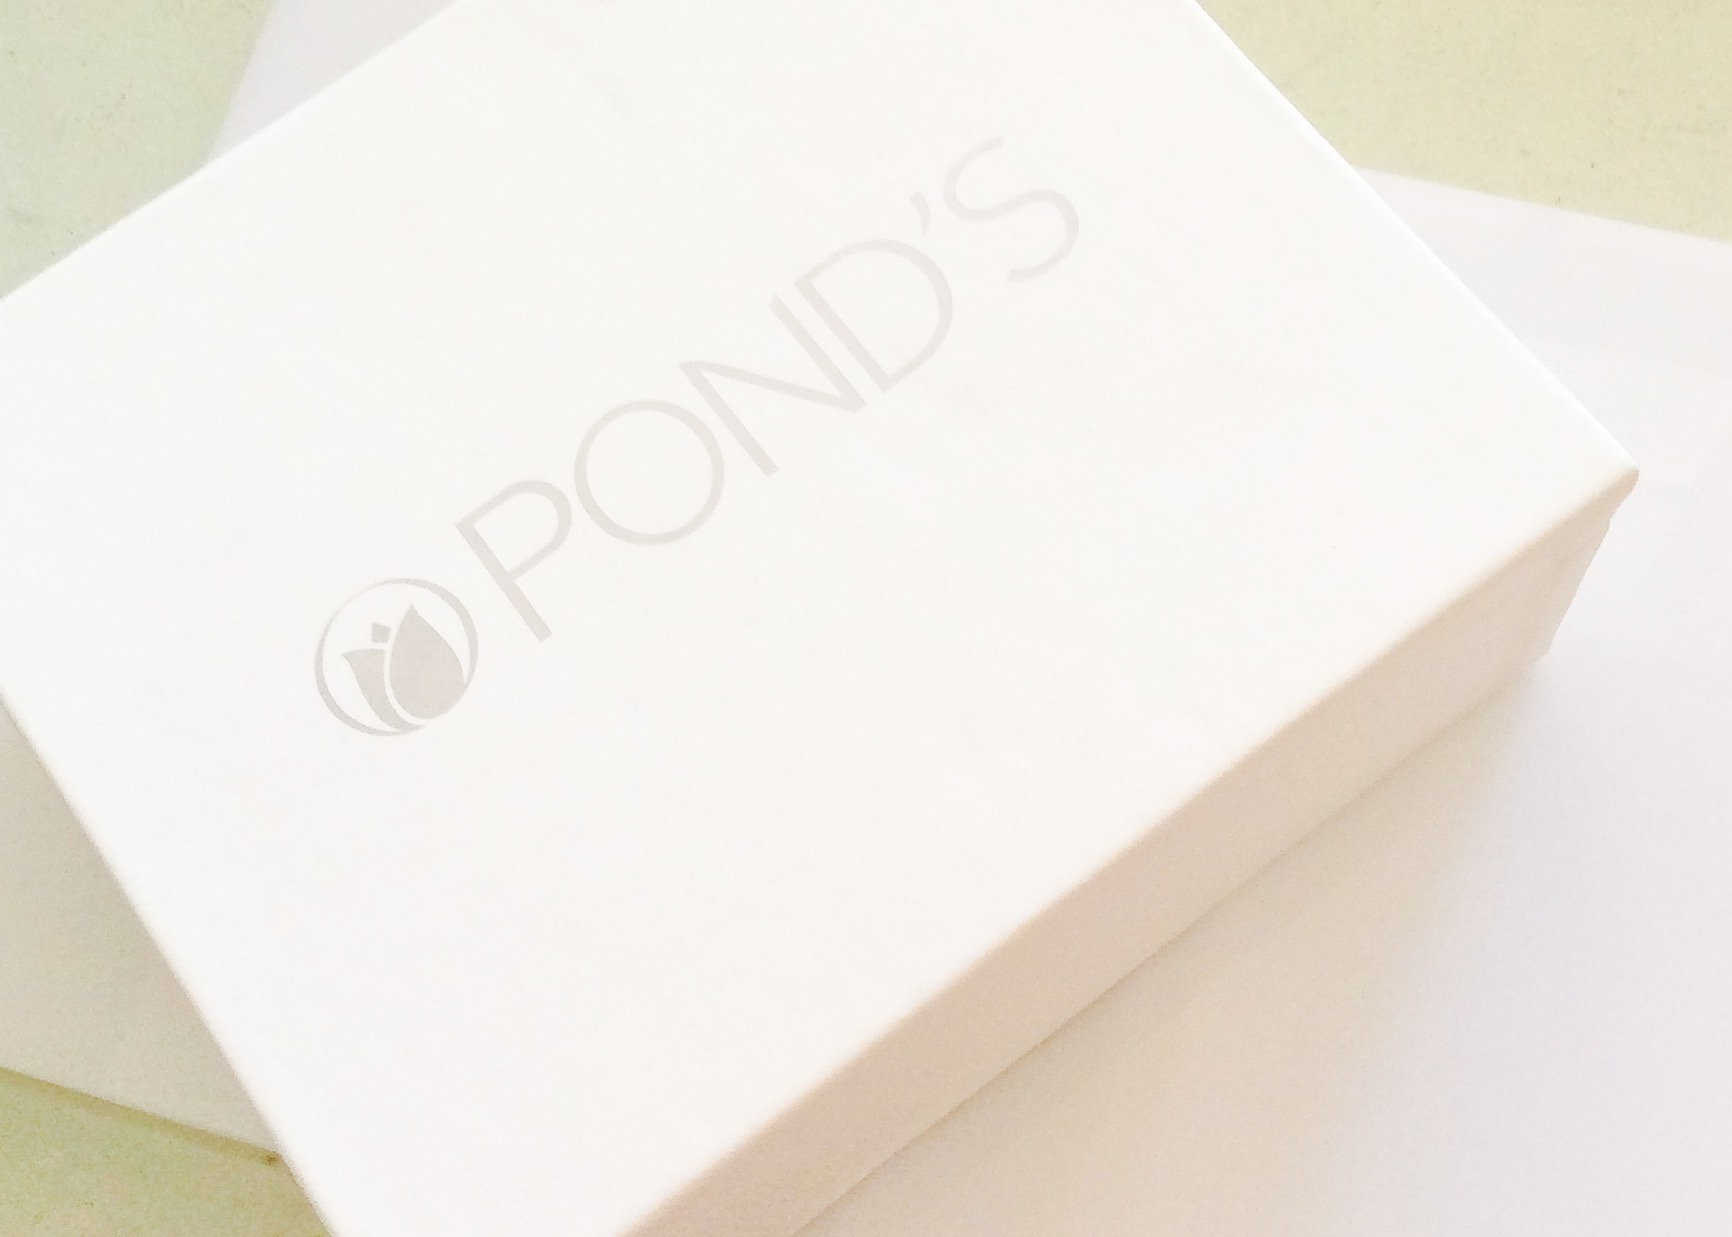 Pond's No Makeup Look Kit